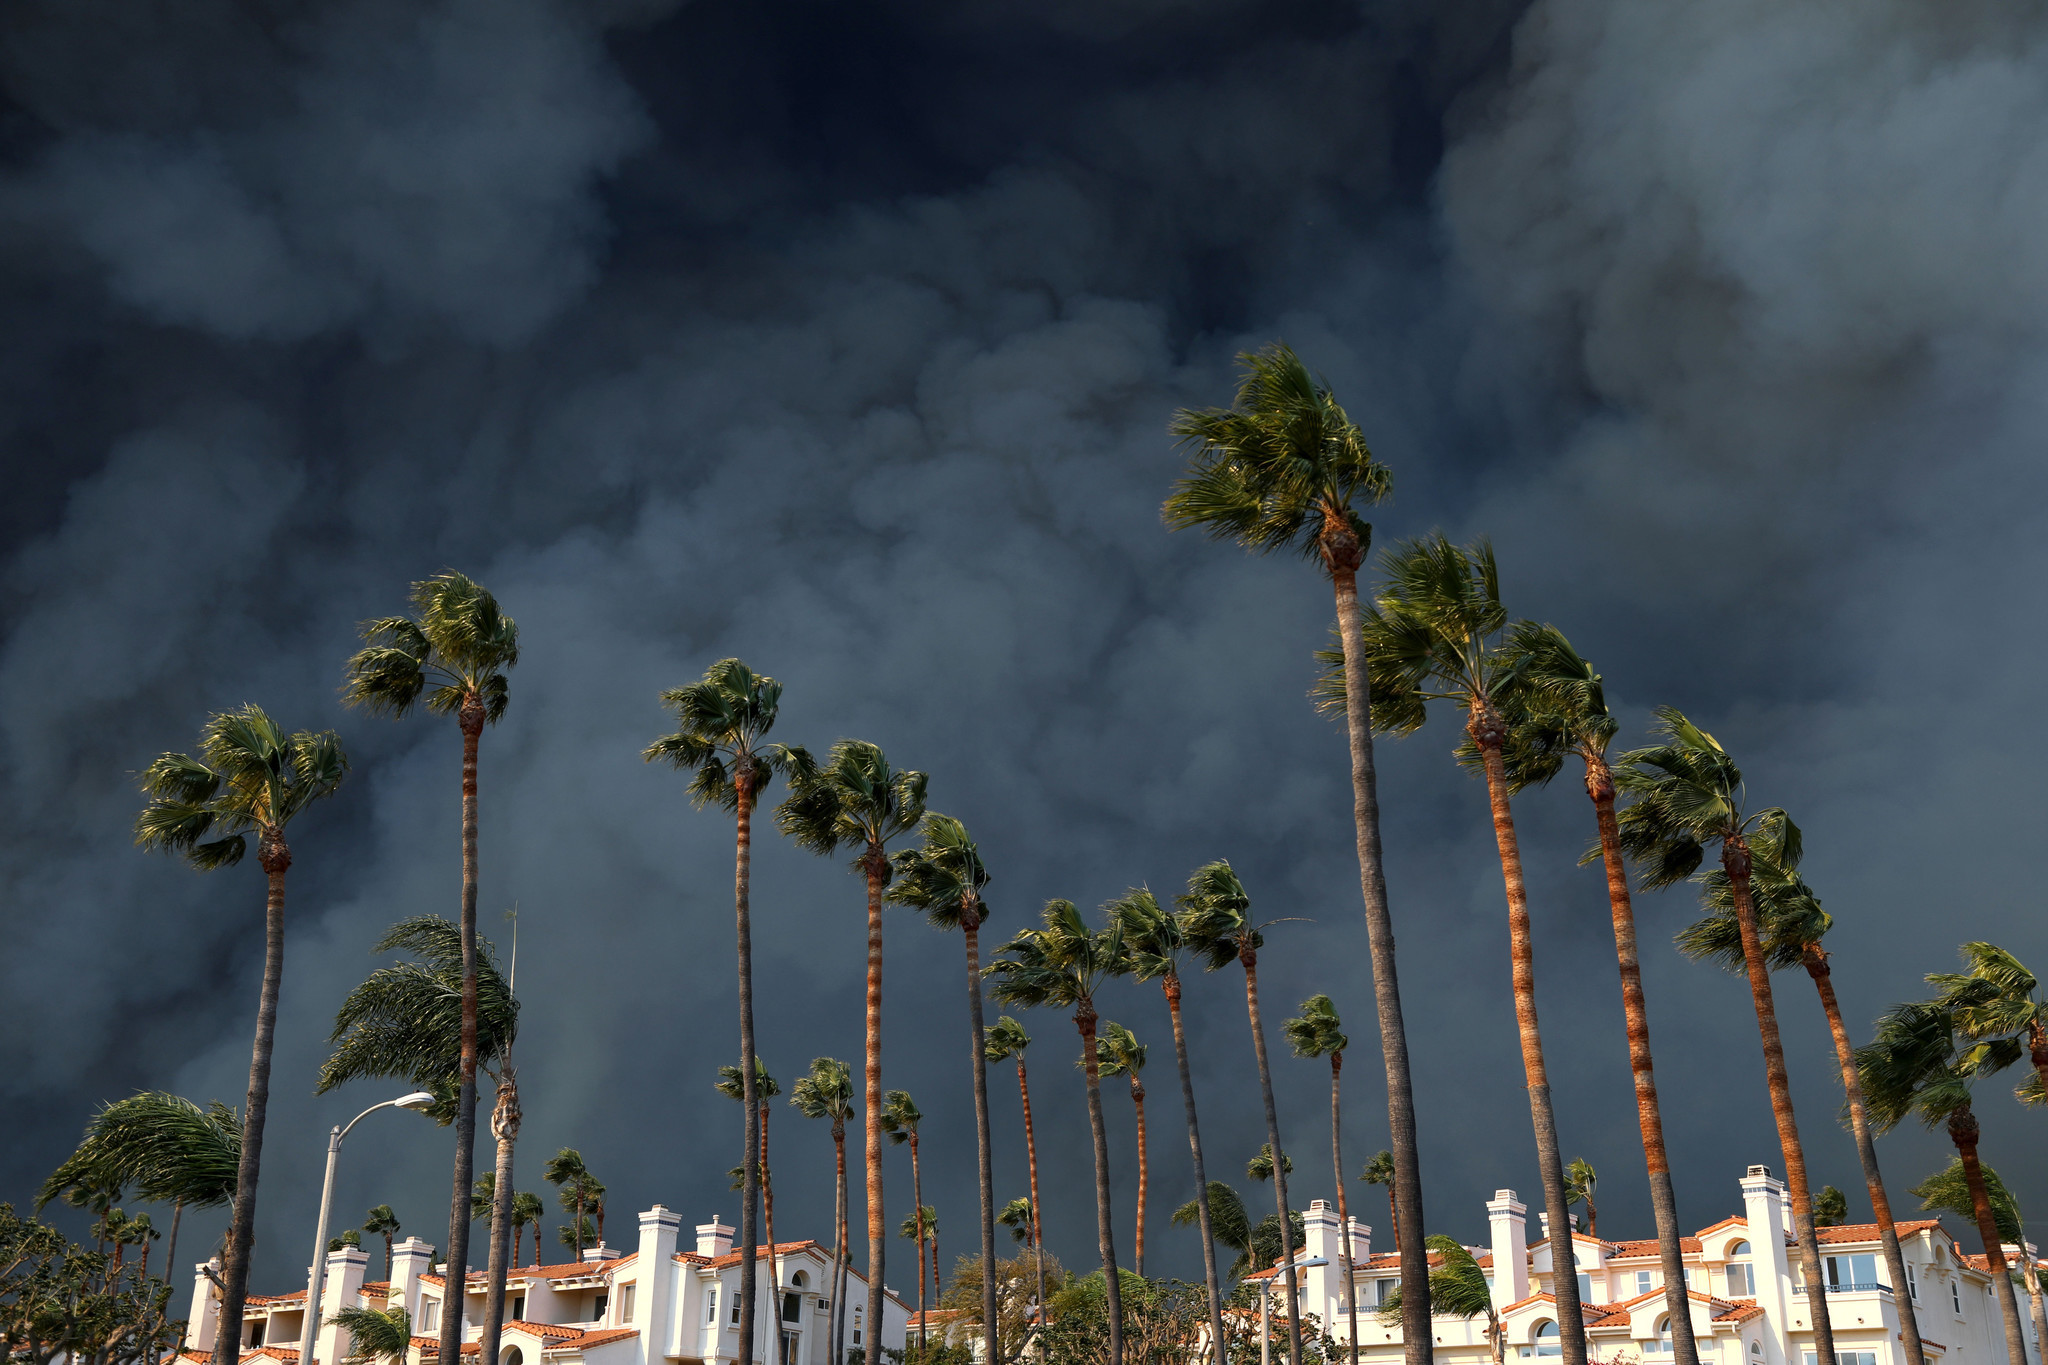 MALIBU, CA-NOVEMBER 9, 2018: Smoke billows behind a building and palm trees along the PCH in western